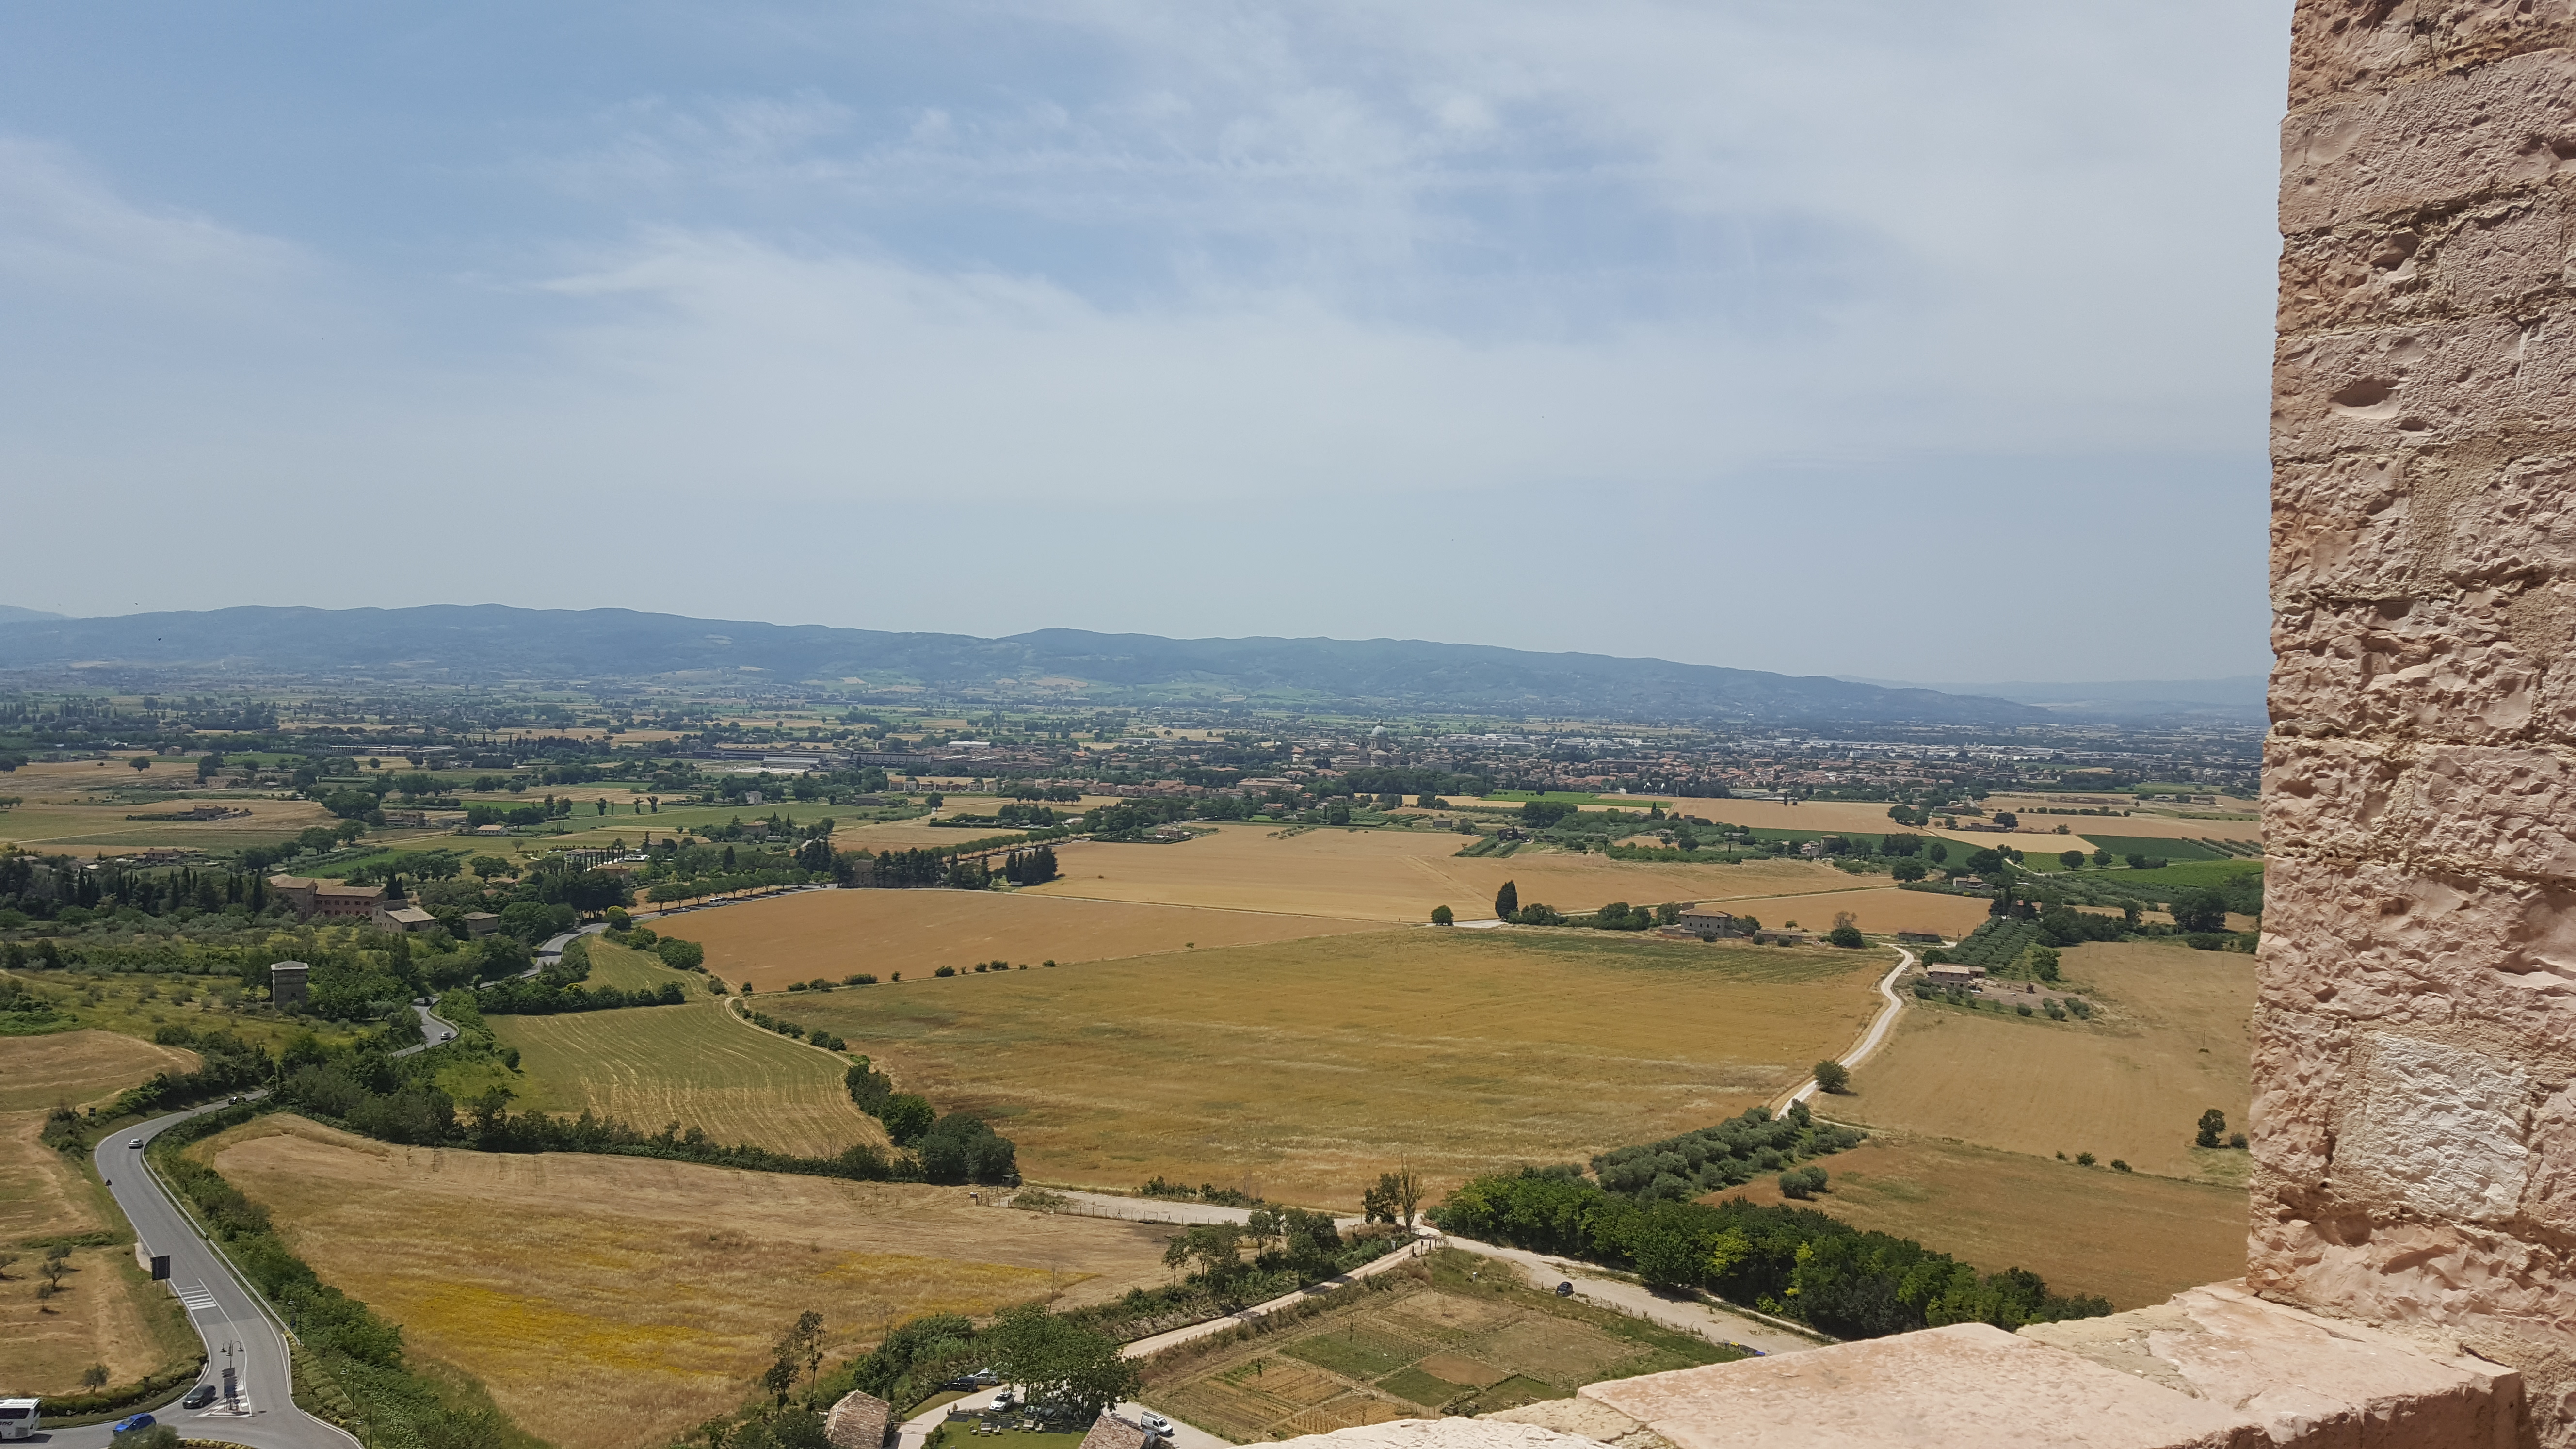 Assisi: Delighting in God